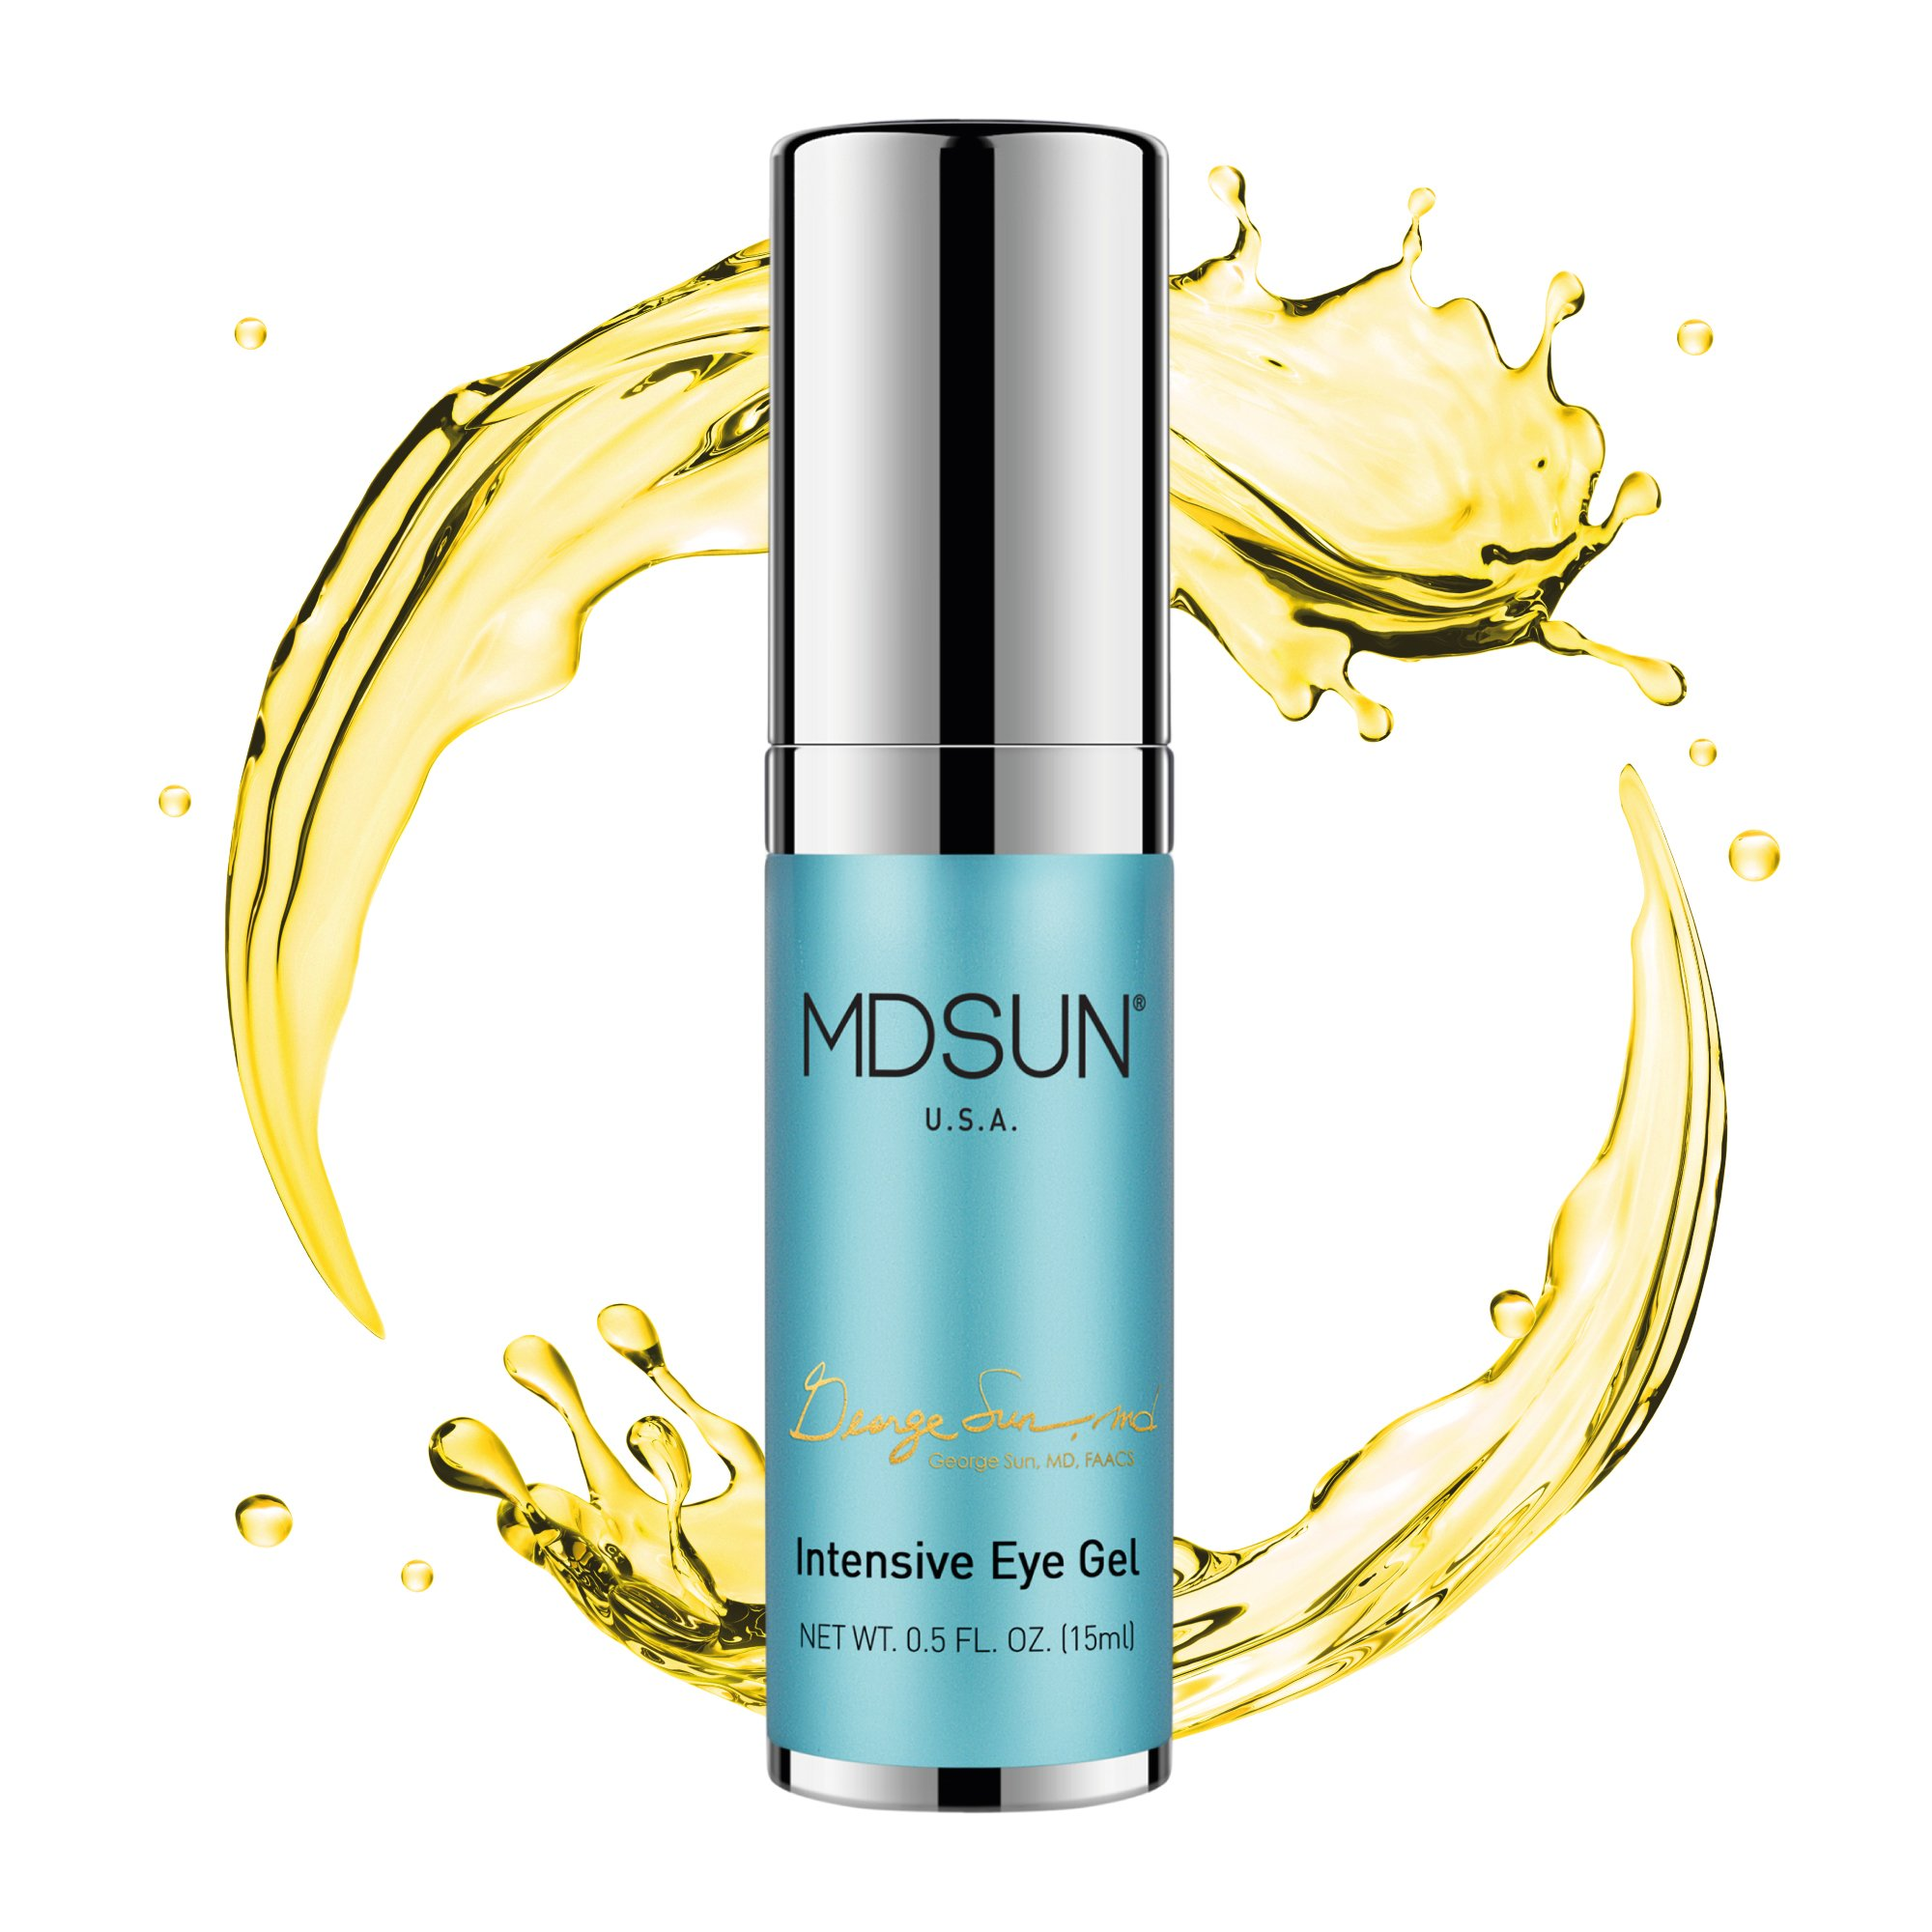 MDSUN Intensive Eye Gel, Alcohol Free; with Sodium Hyaluronate, CoQ10, Vitamin E, C, K, Support Natural Collagen, Keep Skin Moisturized, Radiant & Reduce Lines, Wrinkles, Puffiness, Dark Circles, 15mL